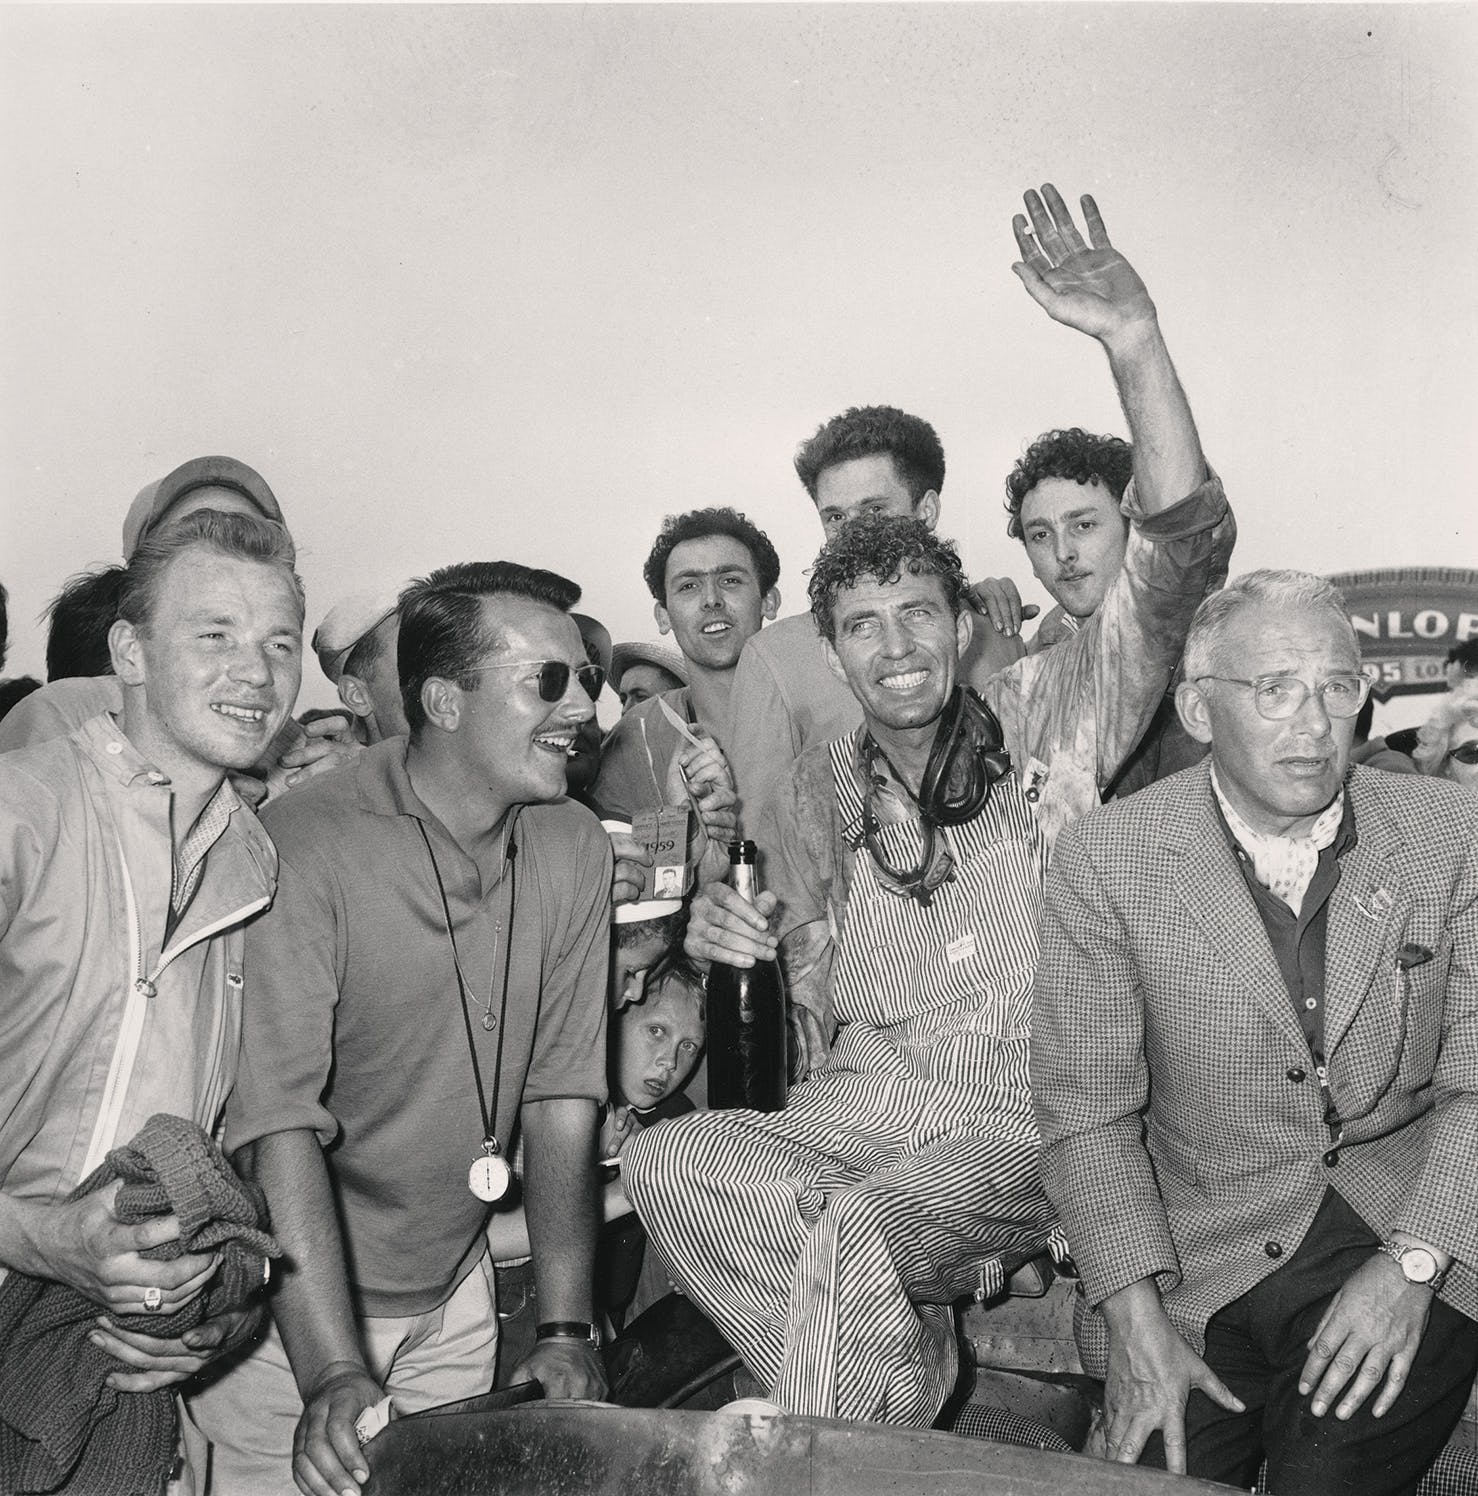 Race car driver Carroll Shelby, of Dallas, is surrounded by fans after winning the 24-hours endurance race at Le Mans, France, on June 21, 1959. He and teammate Roy Salvadori, not shown, drove their Aston Martin to victory at an average speed of 181 kmh.